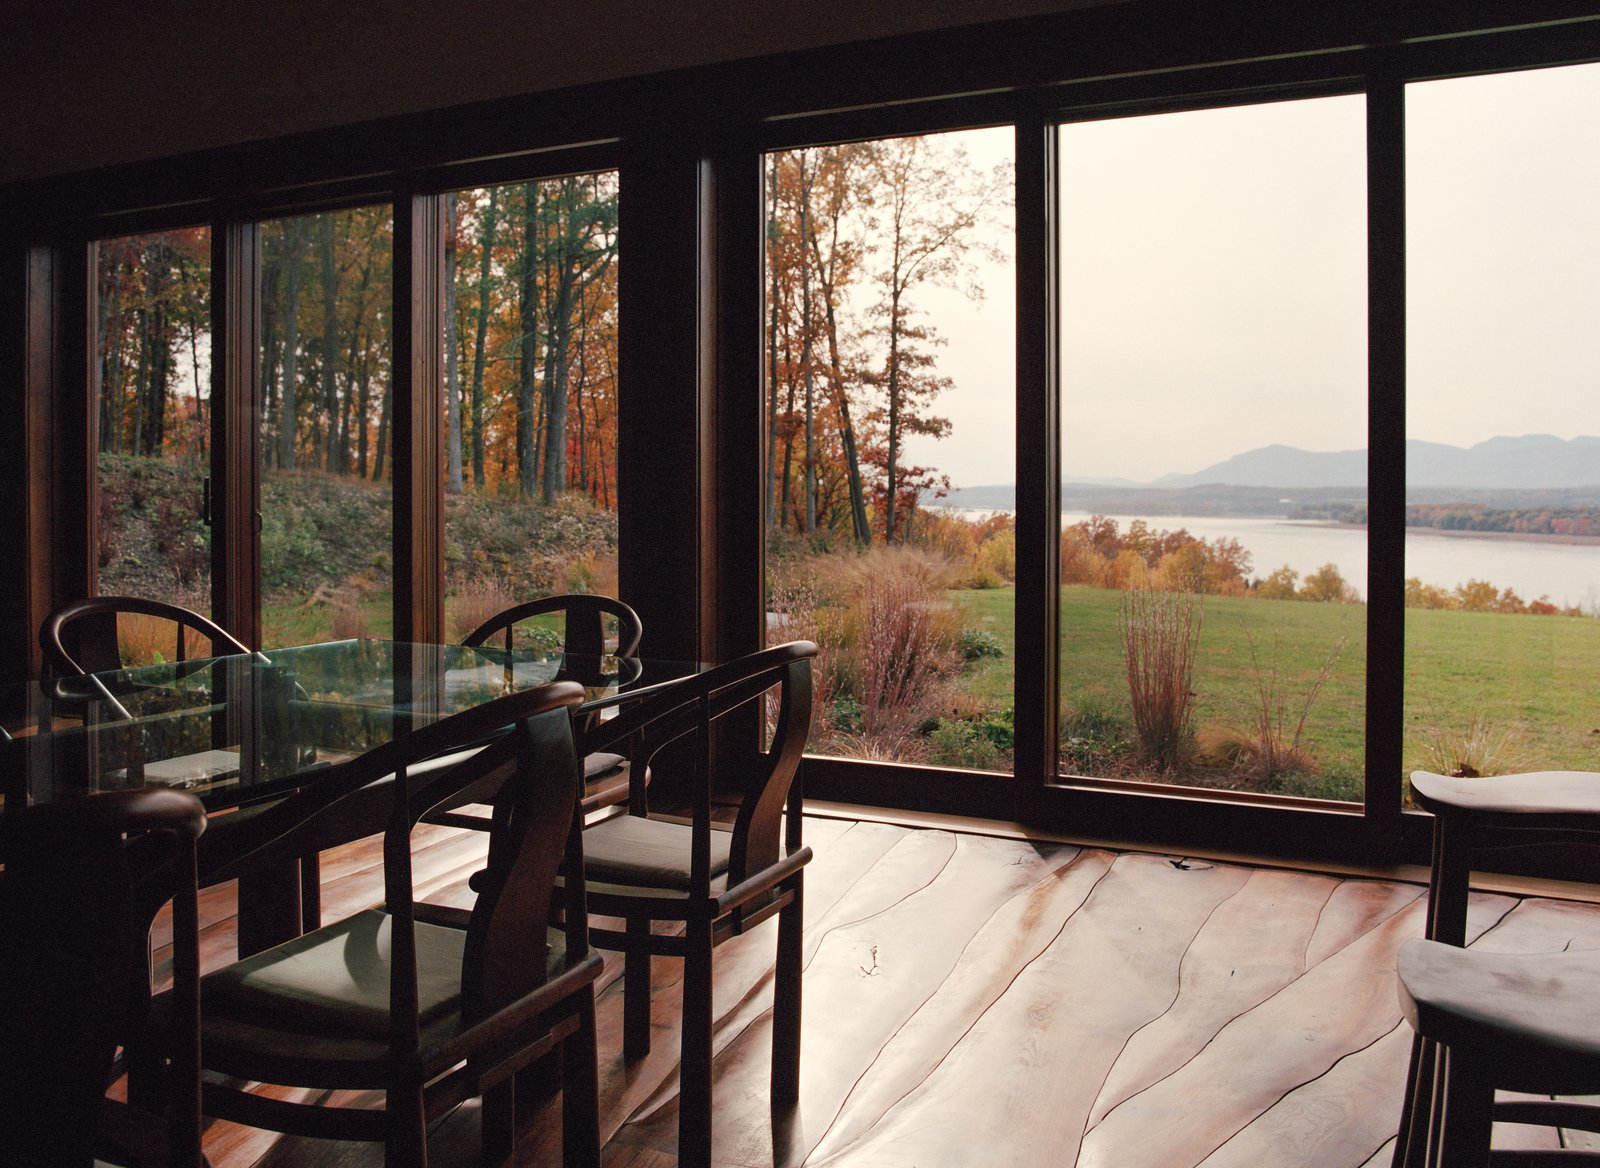 Dining Room, Chair, Table, and Medium Hardwood Floor Overlooking the Hudson River, Allan Shope's nearly 3,000-square-foot sustainable home features handmade furniture and an undulating floor, all crafted from the site's felled black walnut trees.  Photo 1 of 9 in A House Not Built for Human Beings